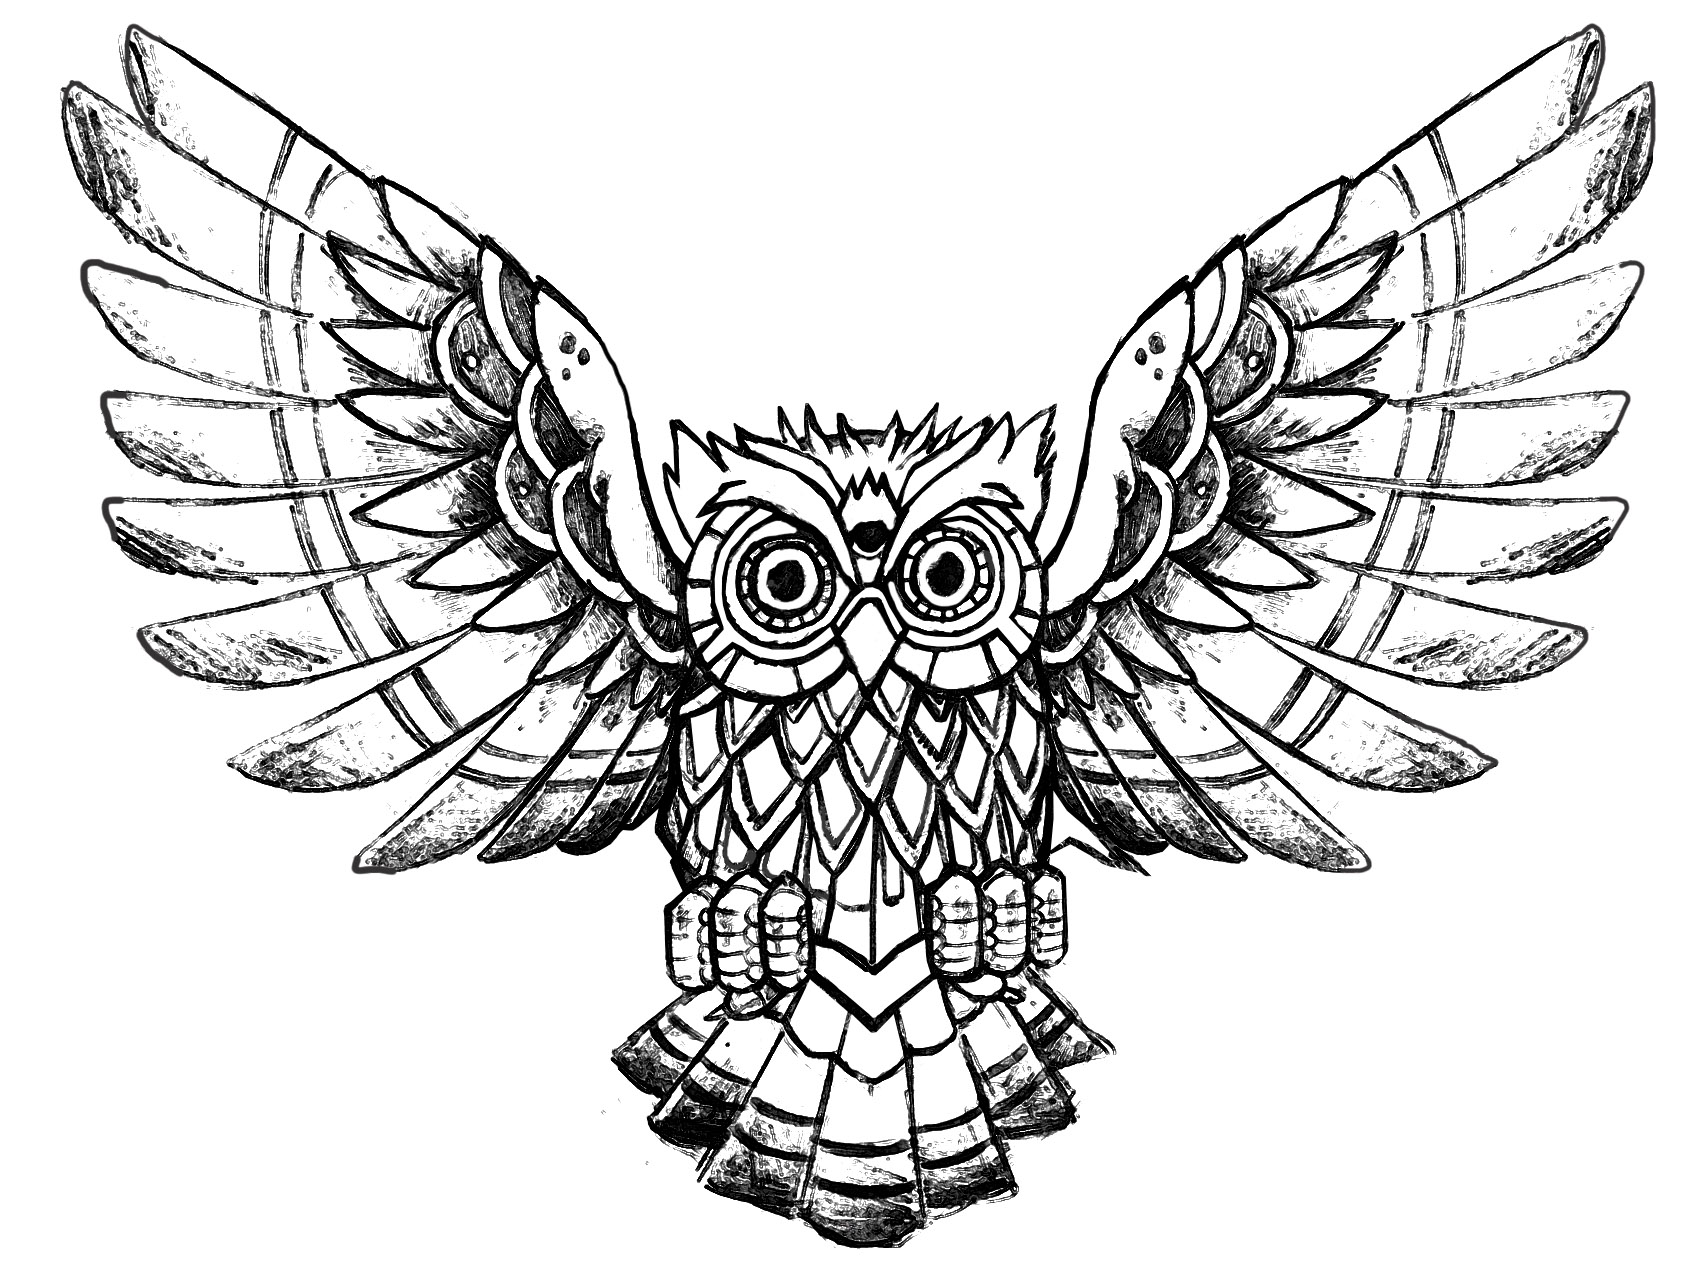 printable owl images owl raw drawing owls adult coloring pages images printable owl